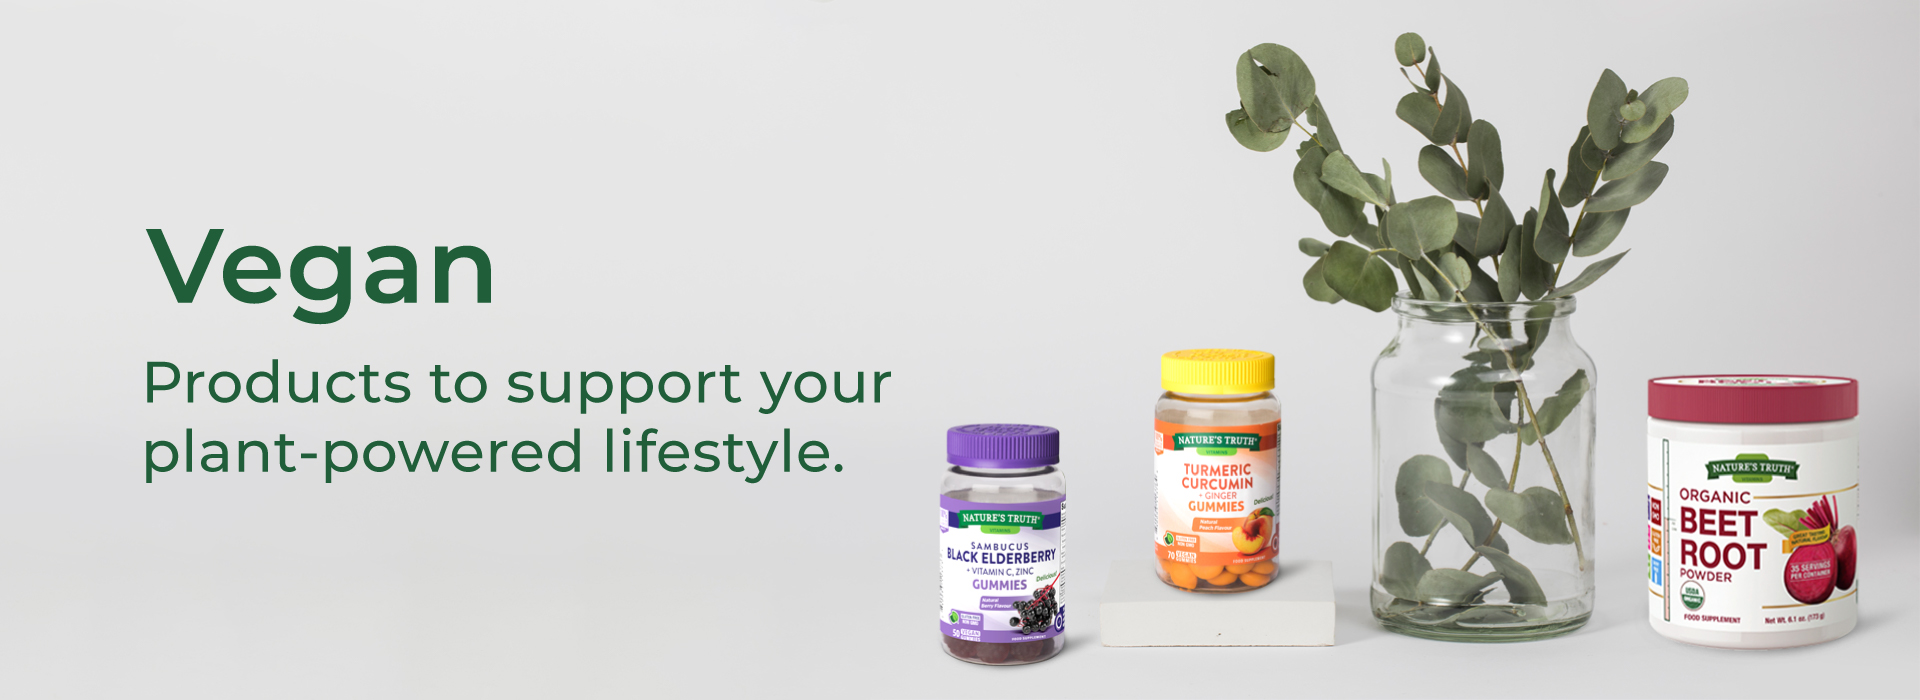 Vegan products to support your plant powered lifestyle